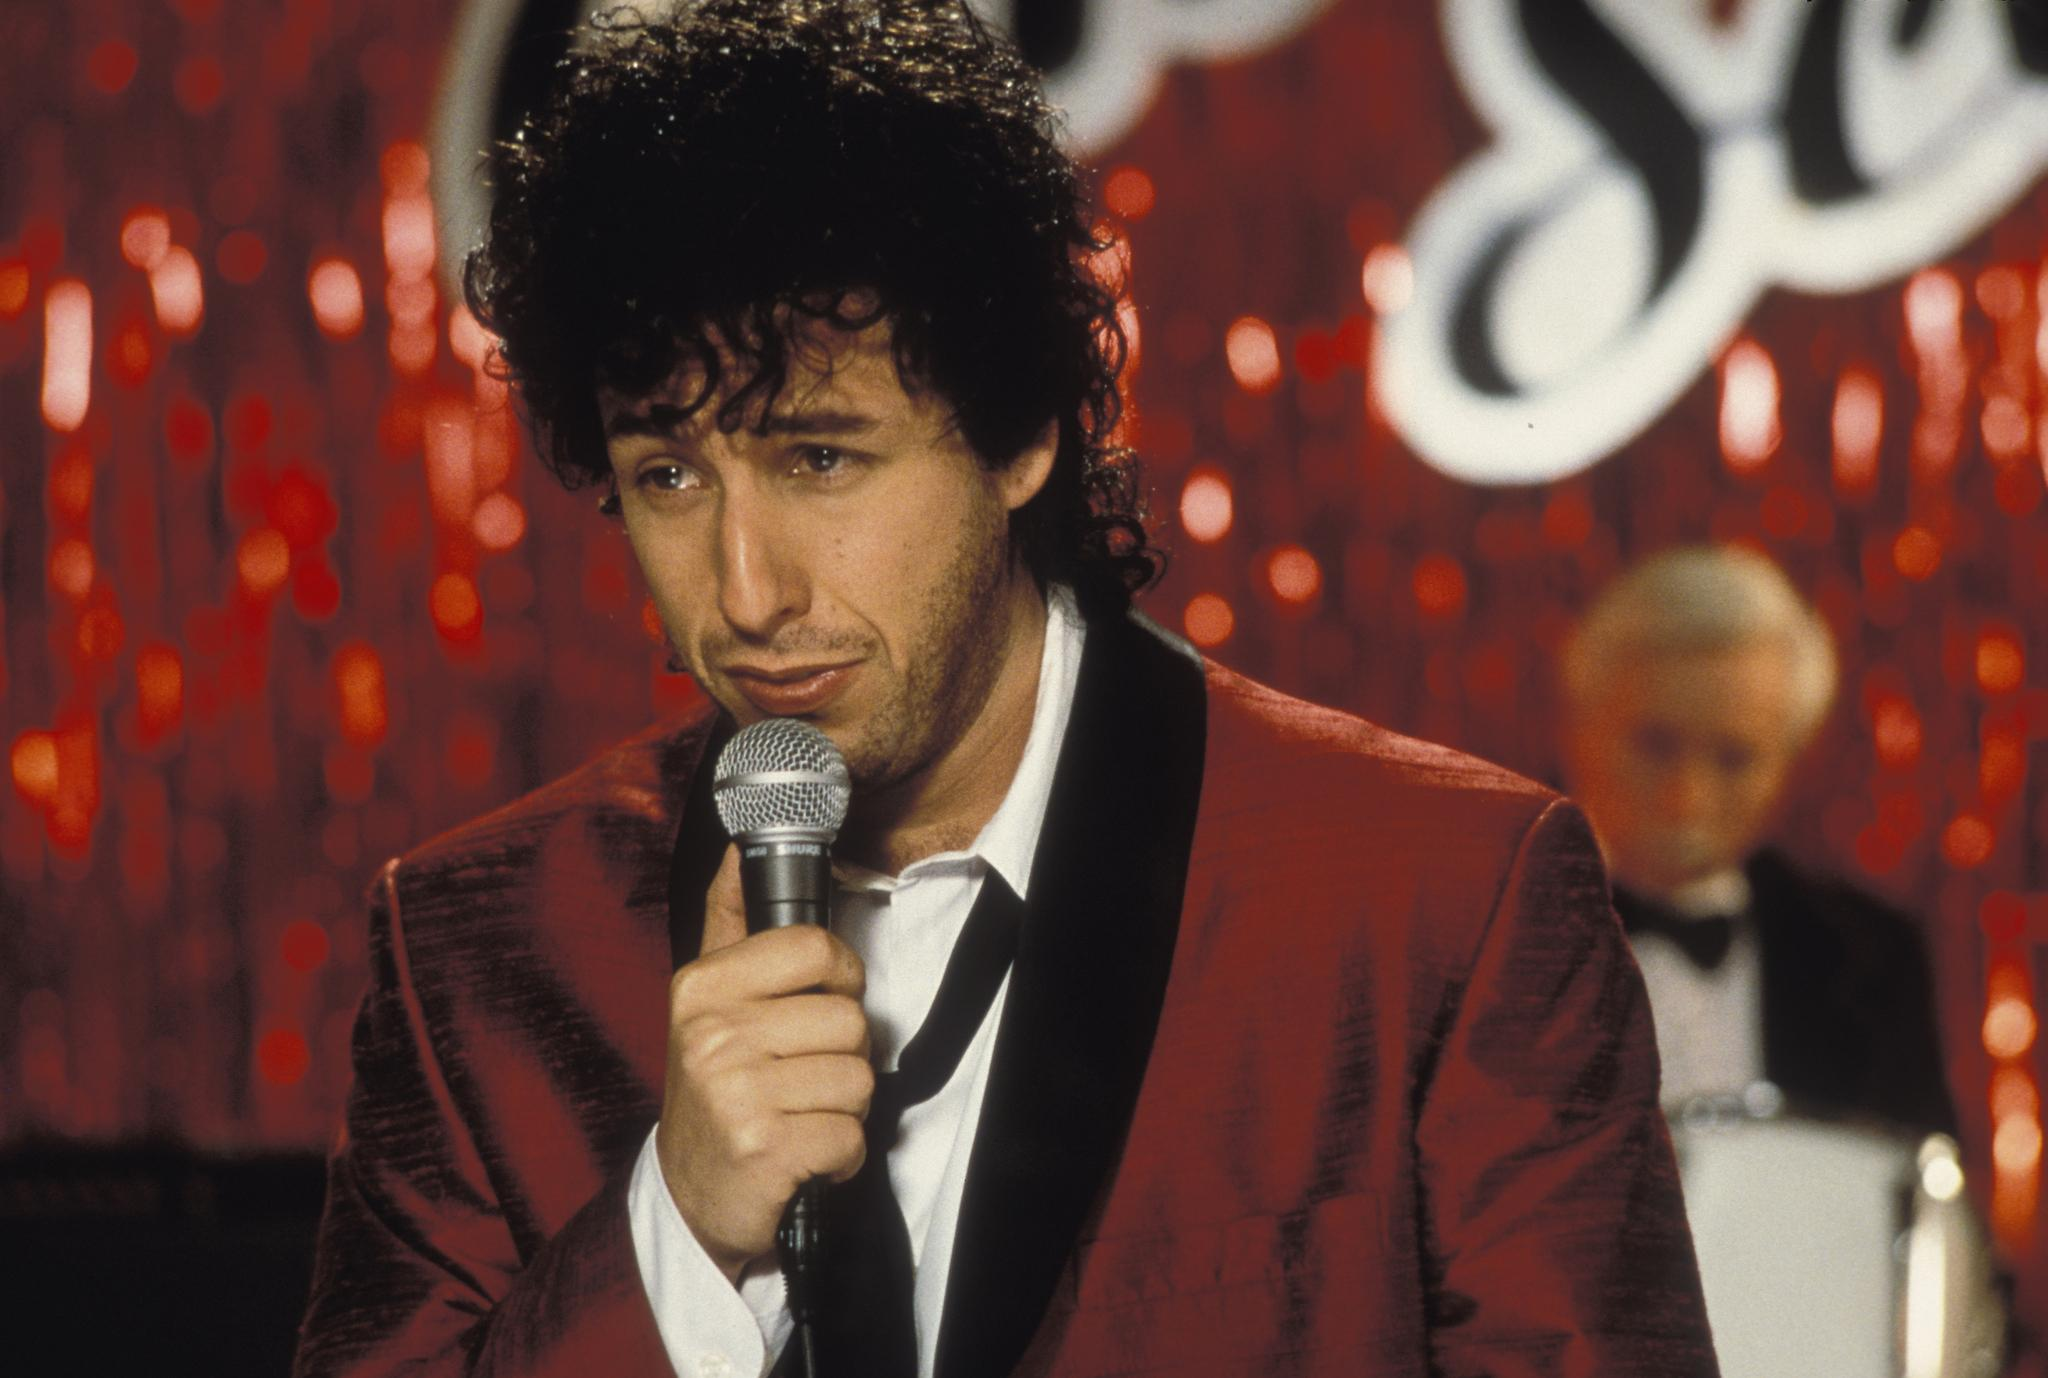 Wedding Singer Quotes Funny Movie Quotes And Scenes That Will Get You Through The Week